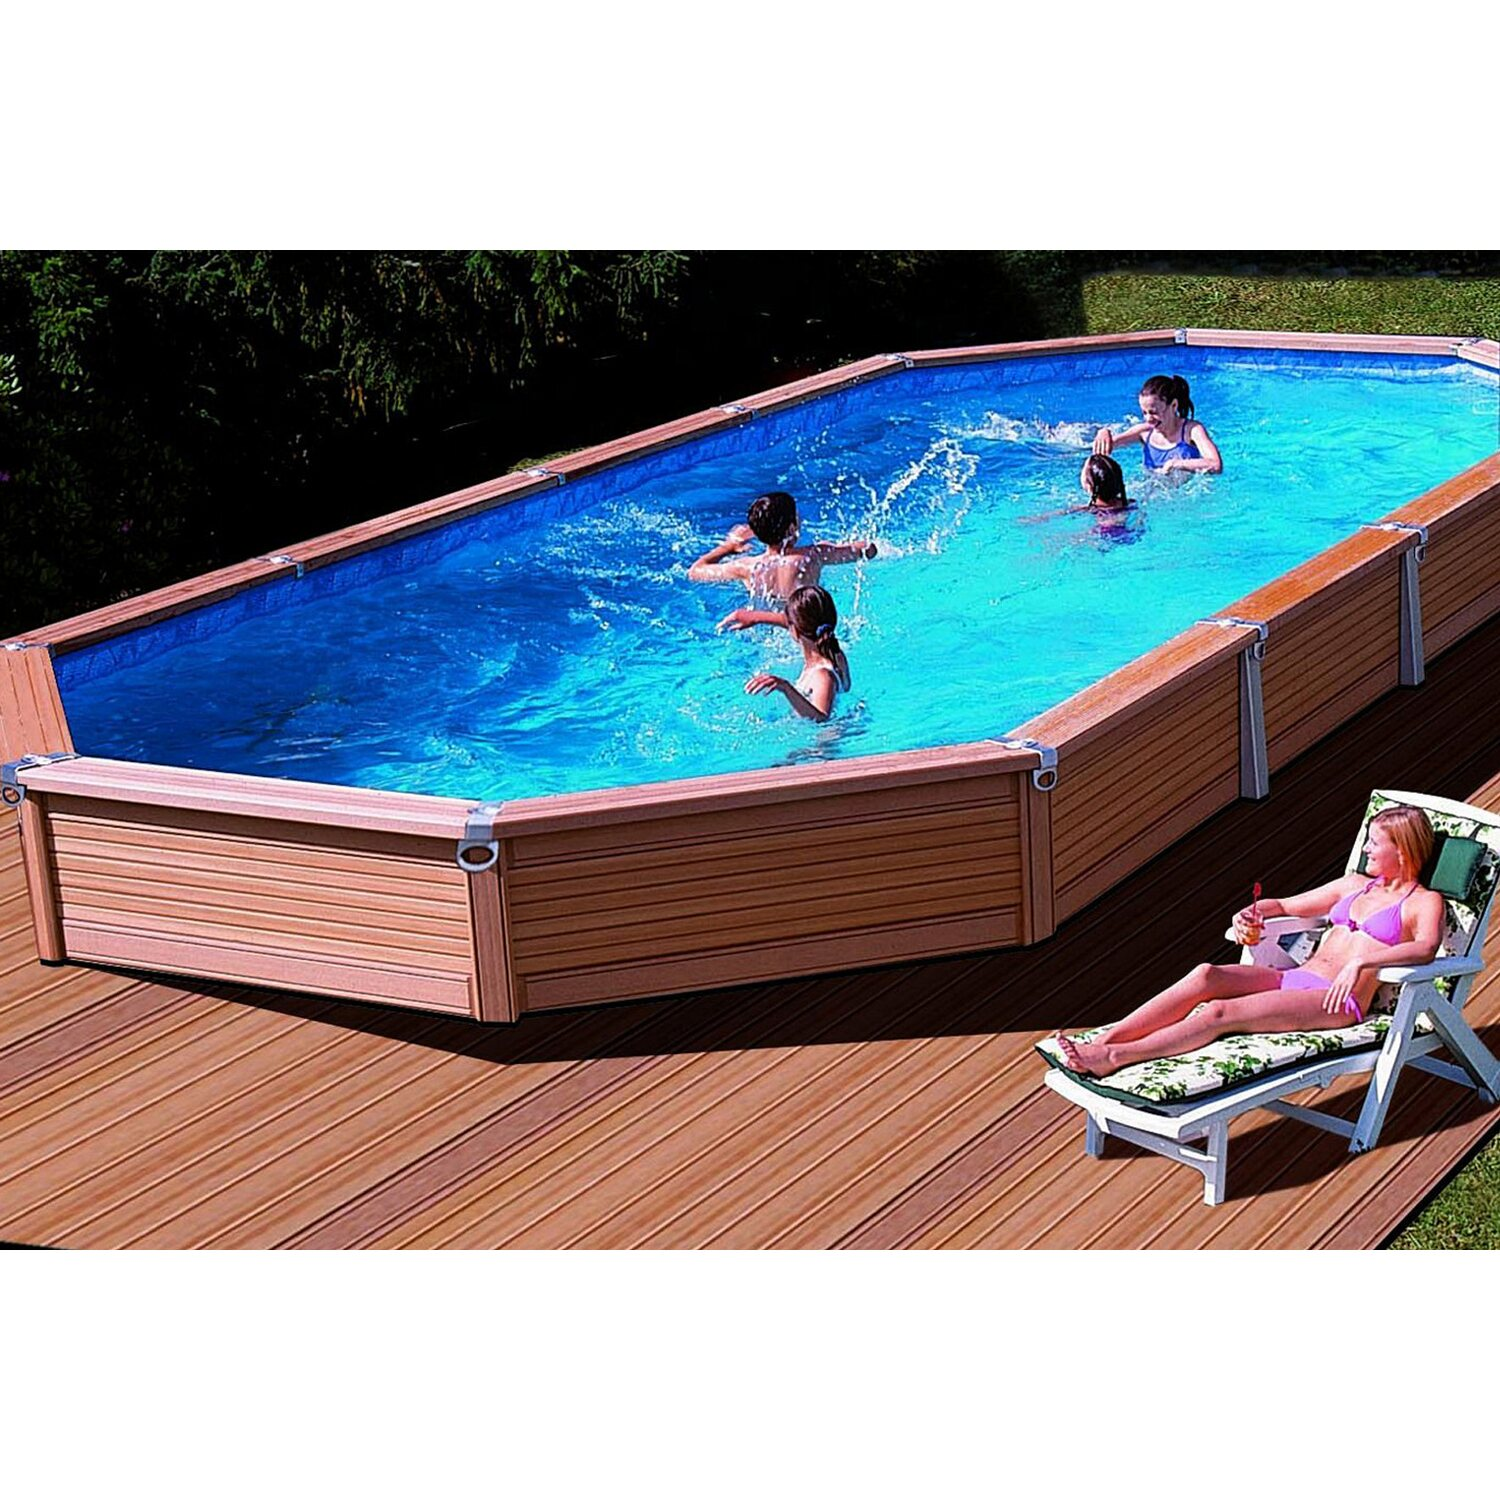 Summer fun pool set azteck einbaubecken ovalform 560 cm x for Hagebaumarkt swimmingpool